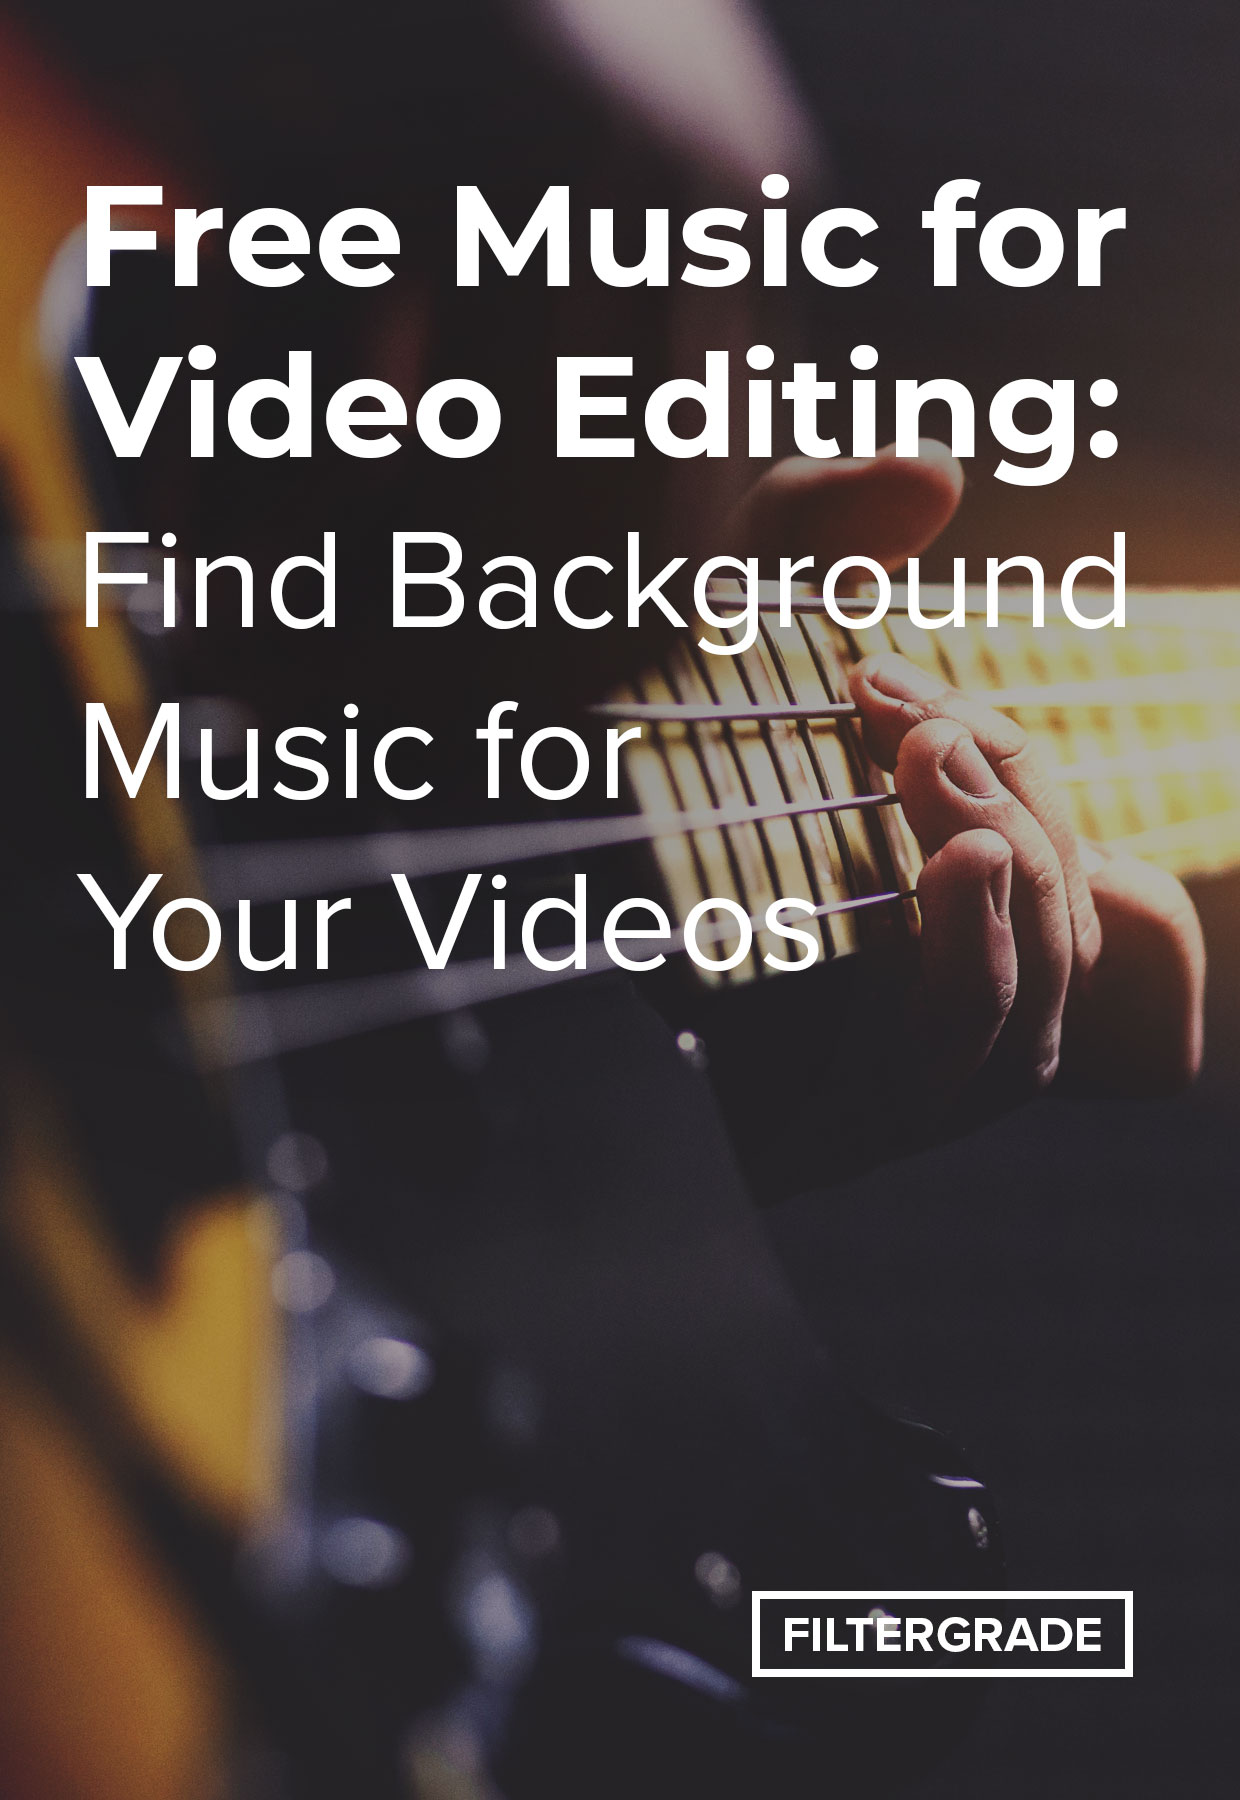 Free Music for Video Editing: Find background music and sound effects from 9 top sources of free and public domain music.